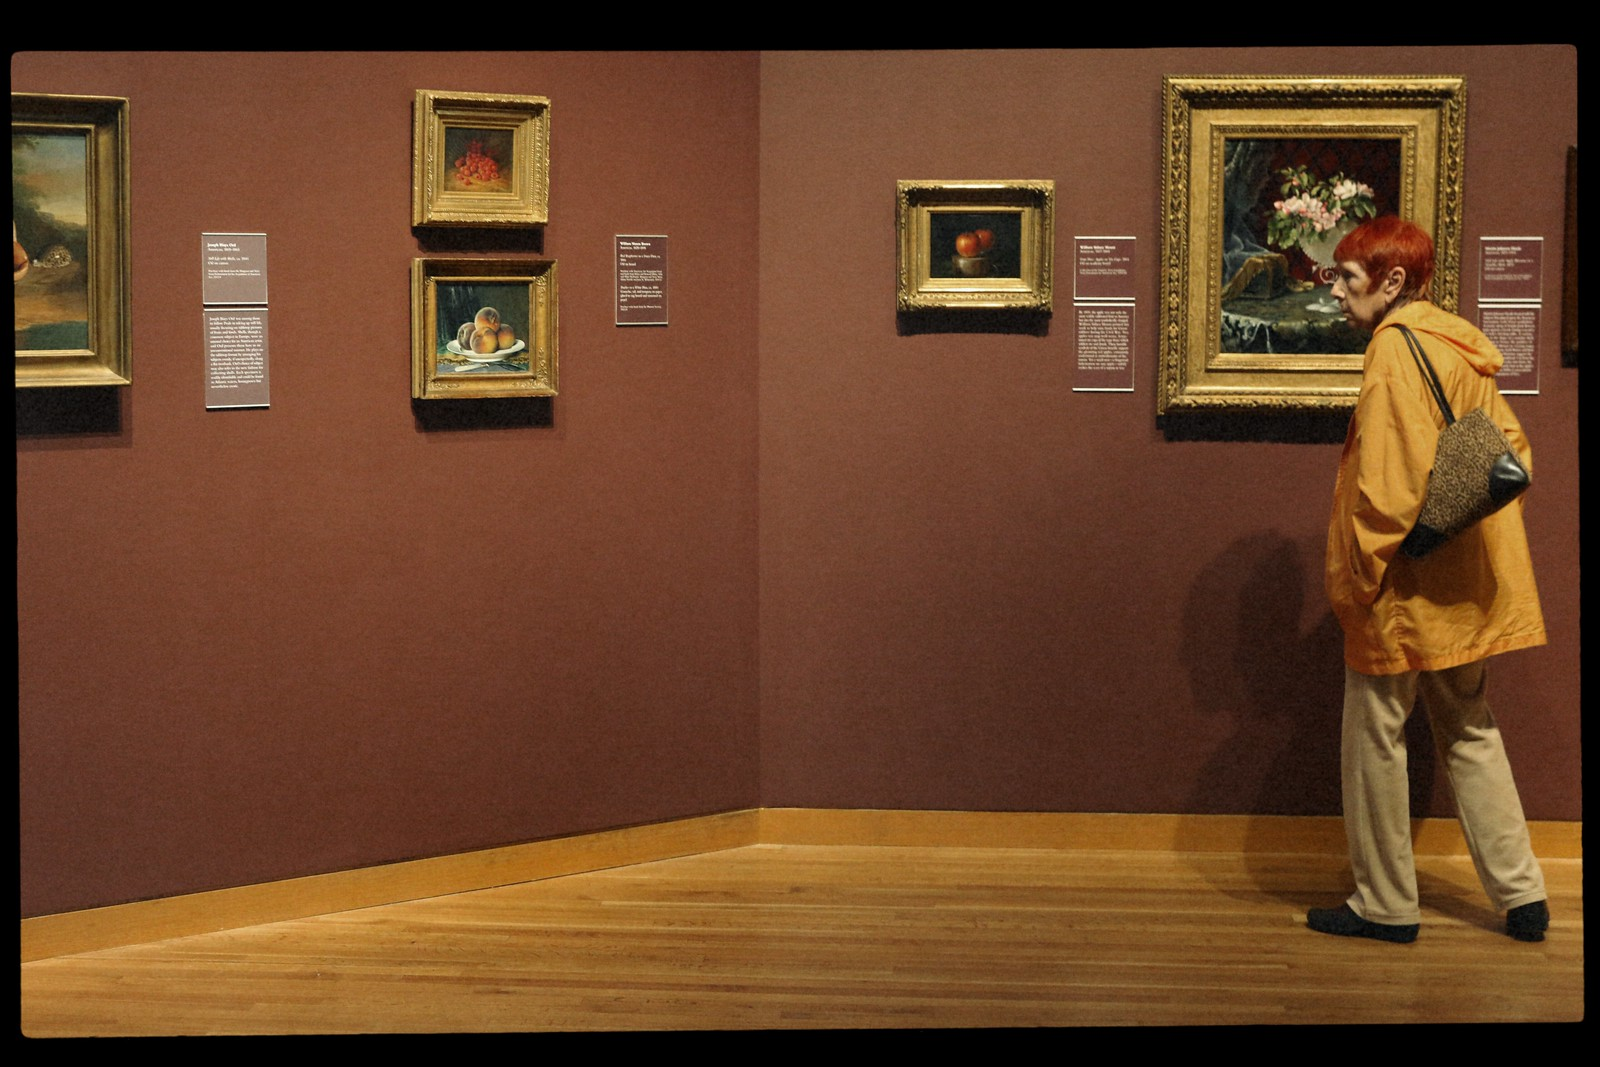 Woman With Still Lifes, High Museum of Art, October 2015